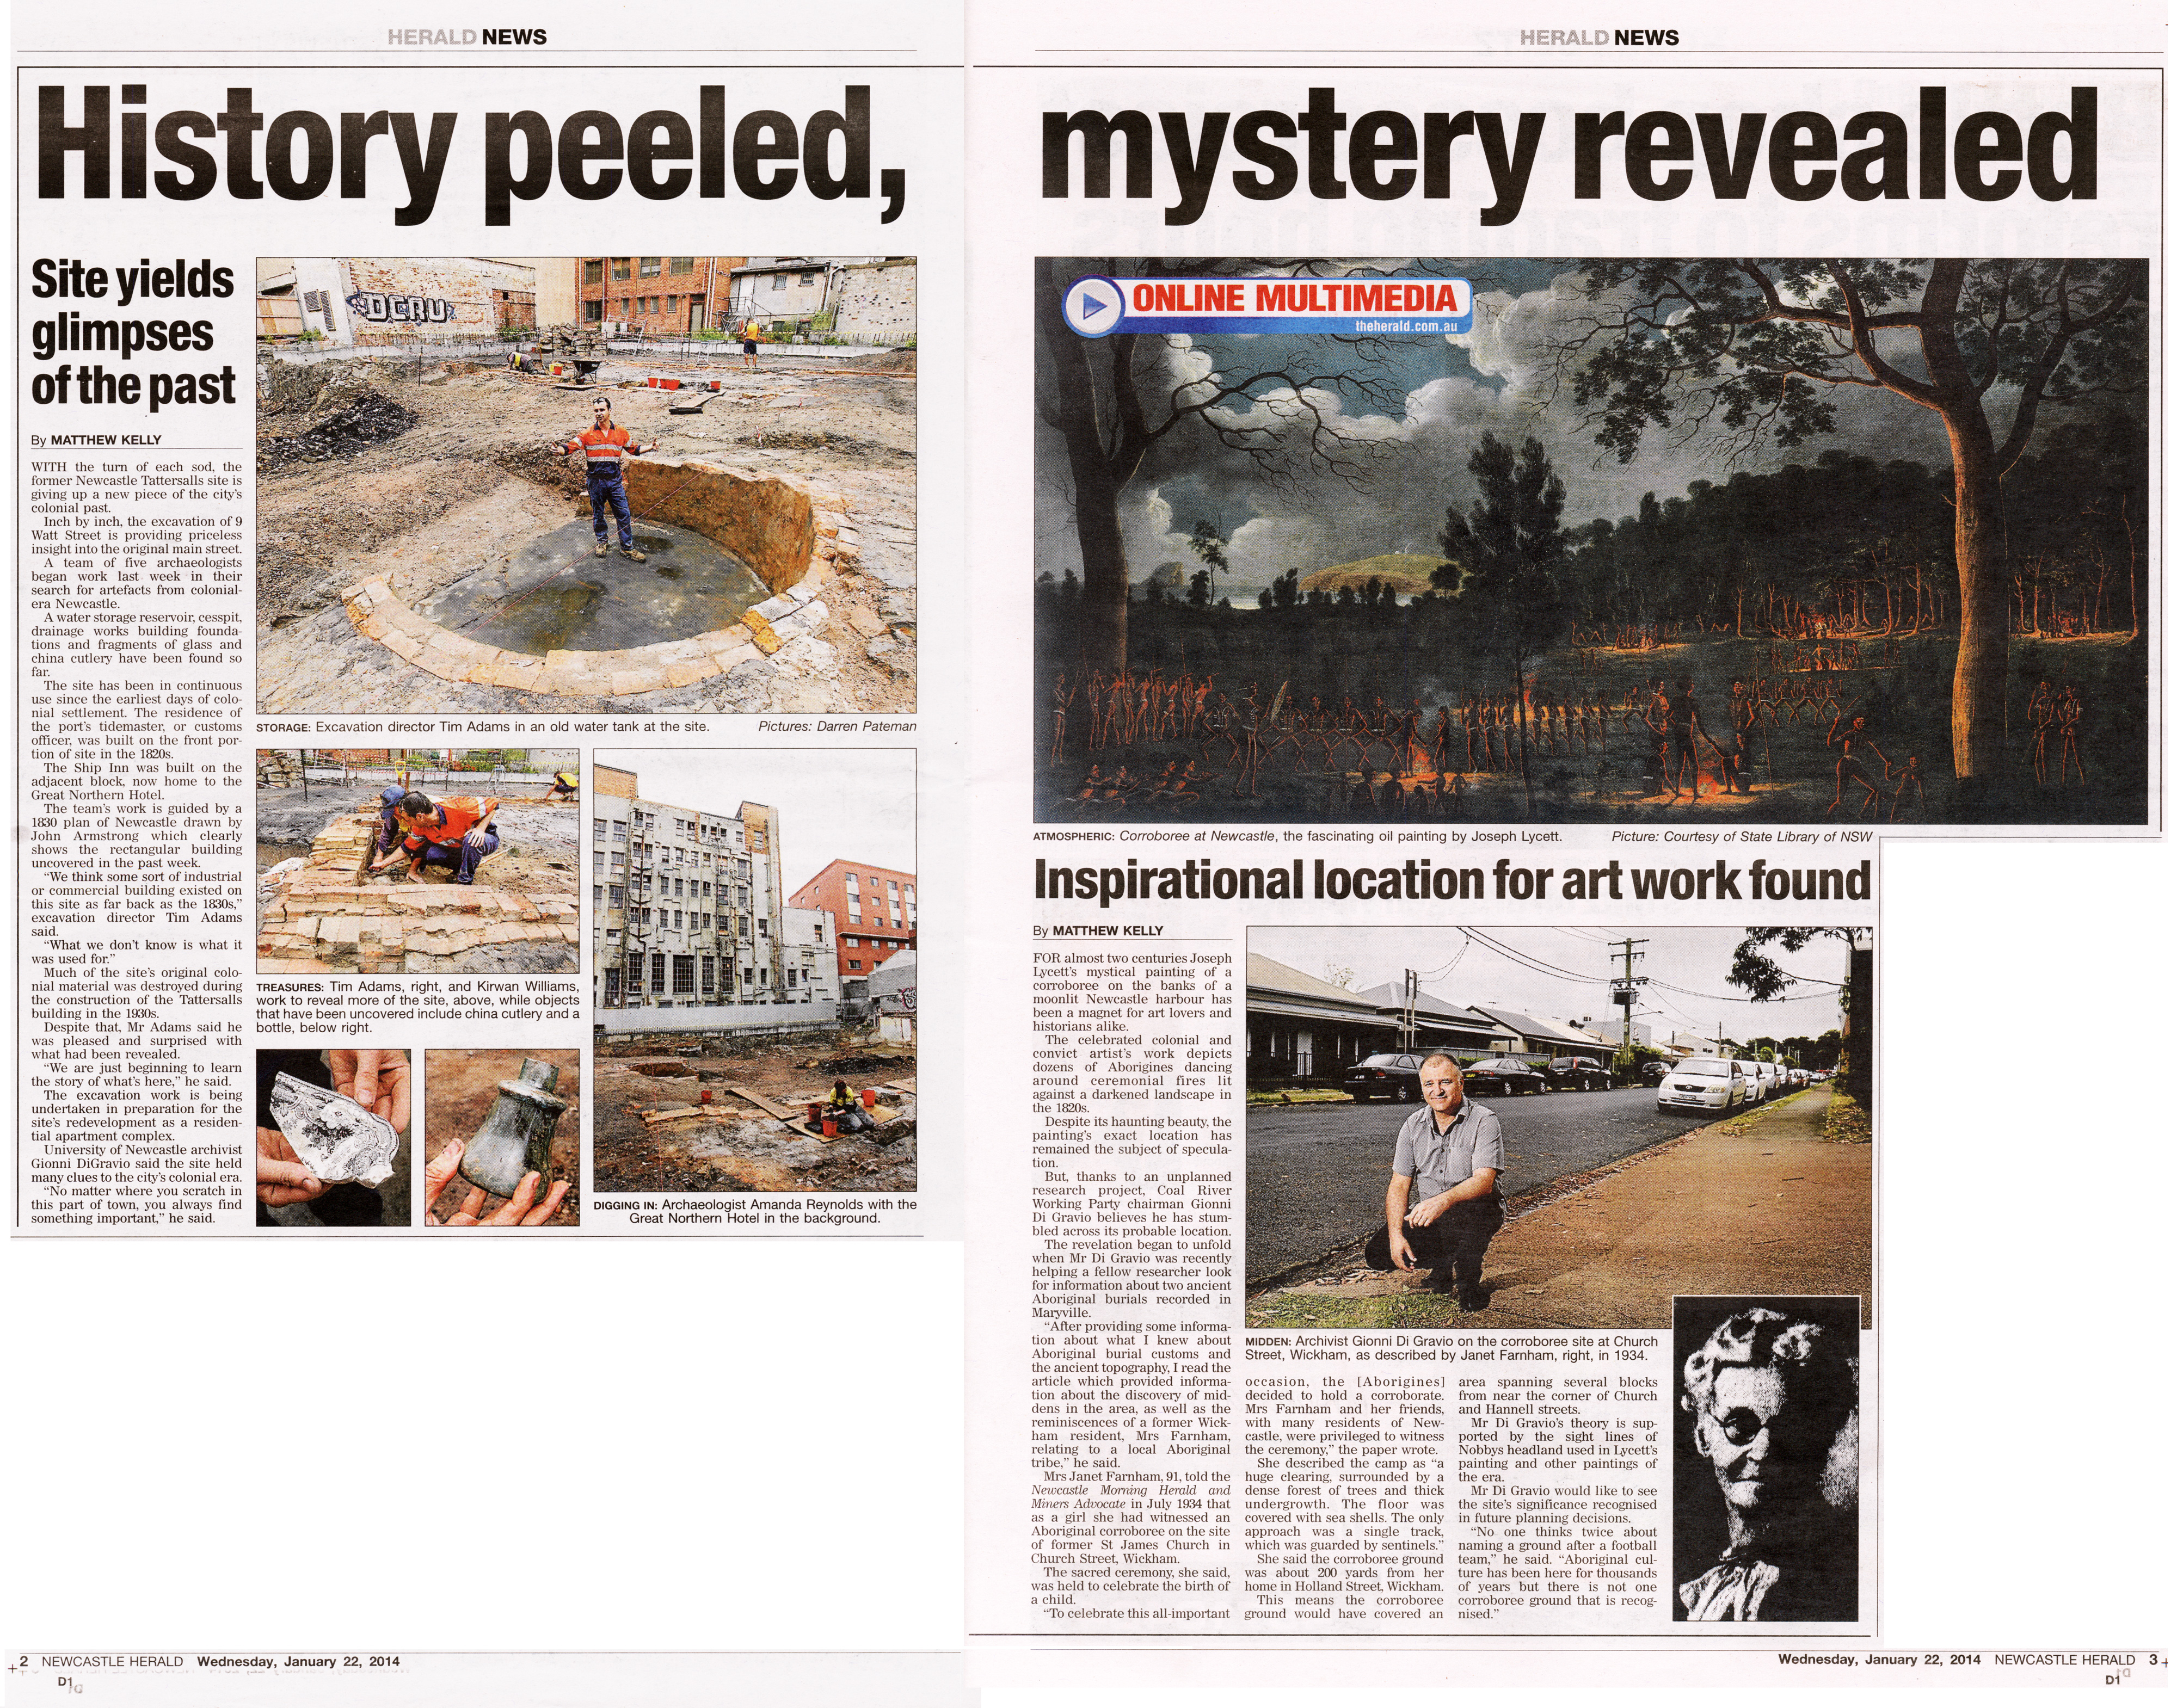 """""""History peeled. mystery revealed"""" by Matthew Kelly Newcastle Herald 22nd January 2014 pages 2-3"""